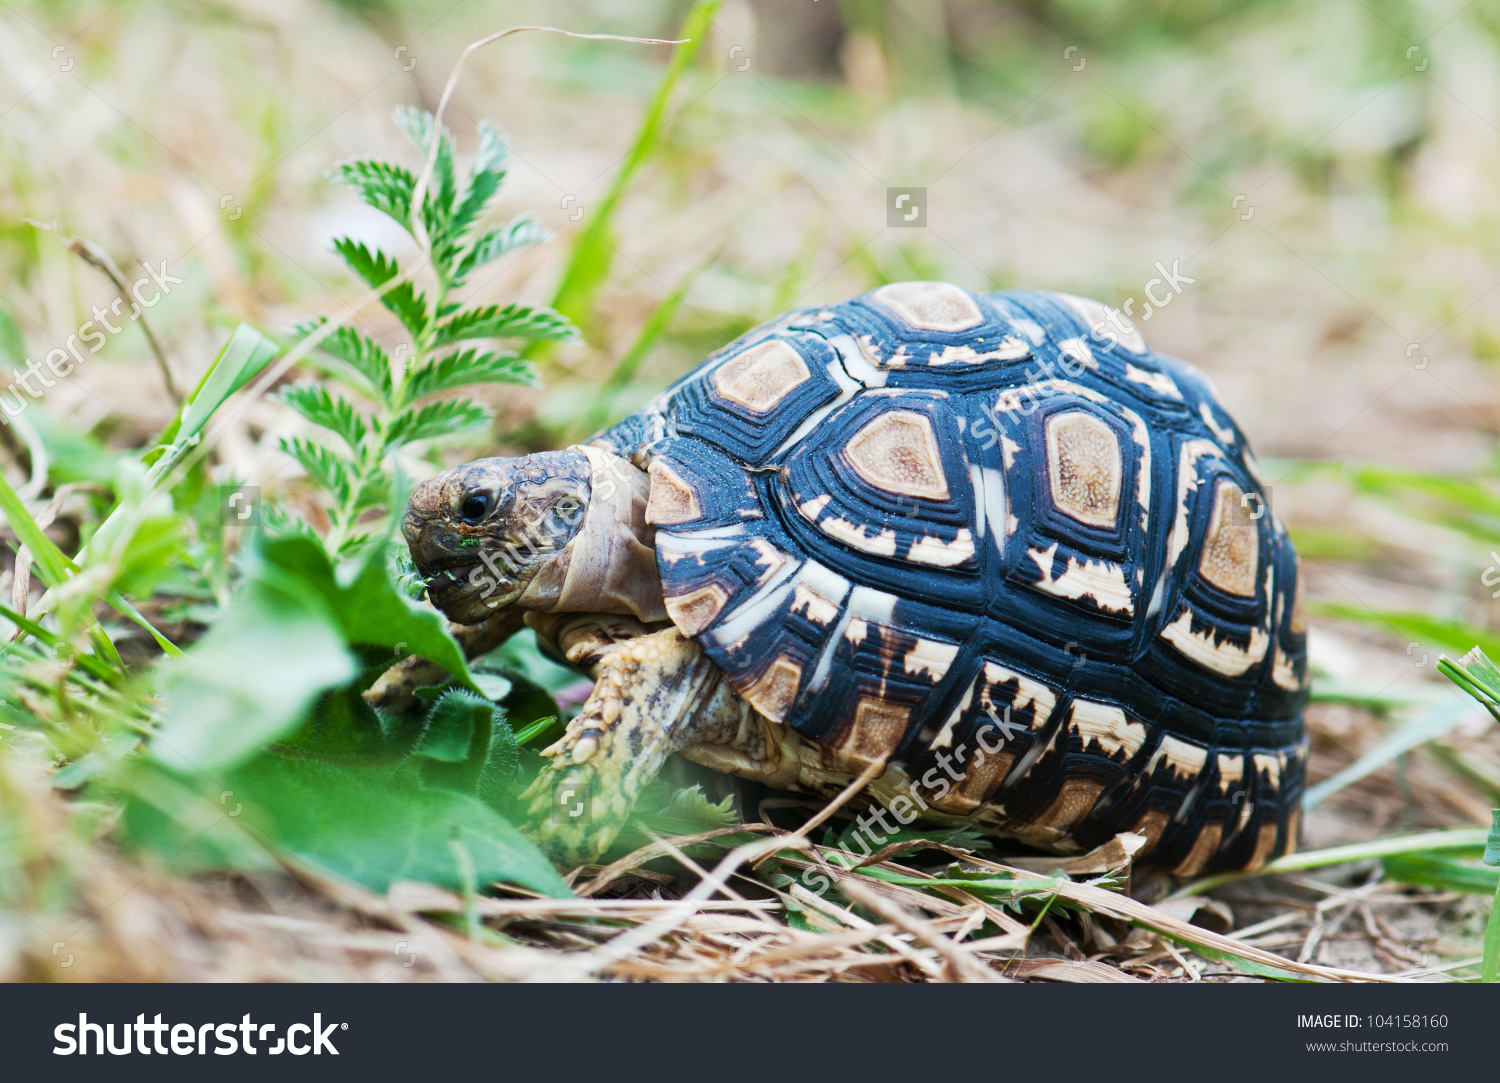 Leopard Tortoise Eating Grass Stock Photo 104158160.